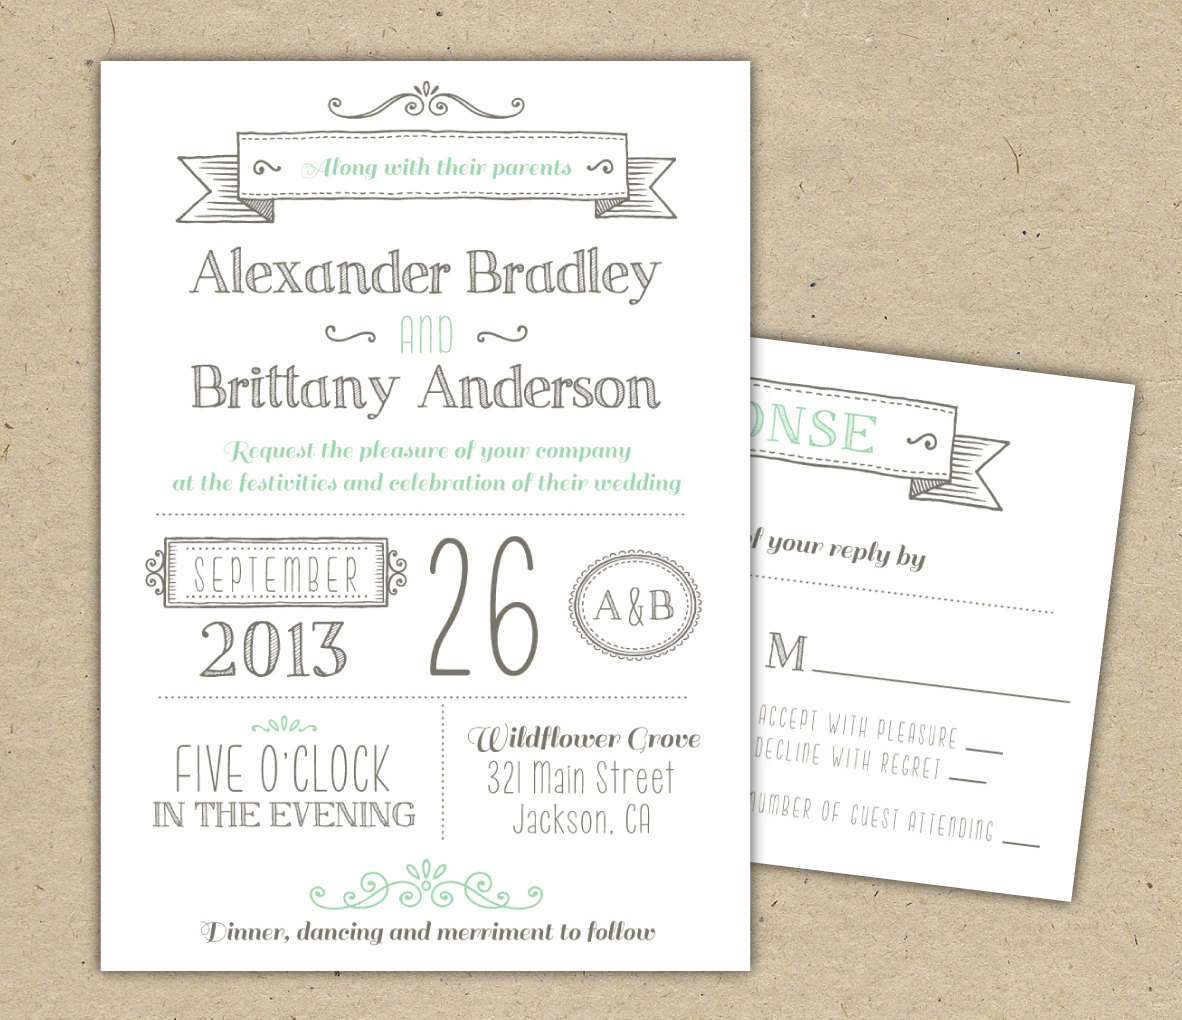 Wedding Ideas. Free Printable Wedding Invitation Templates - Free Printable Wedding Decorations